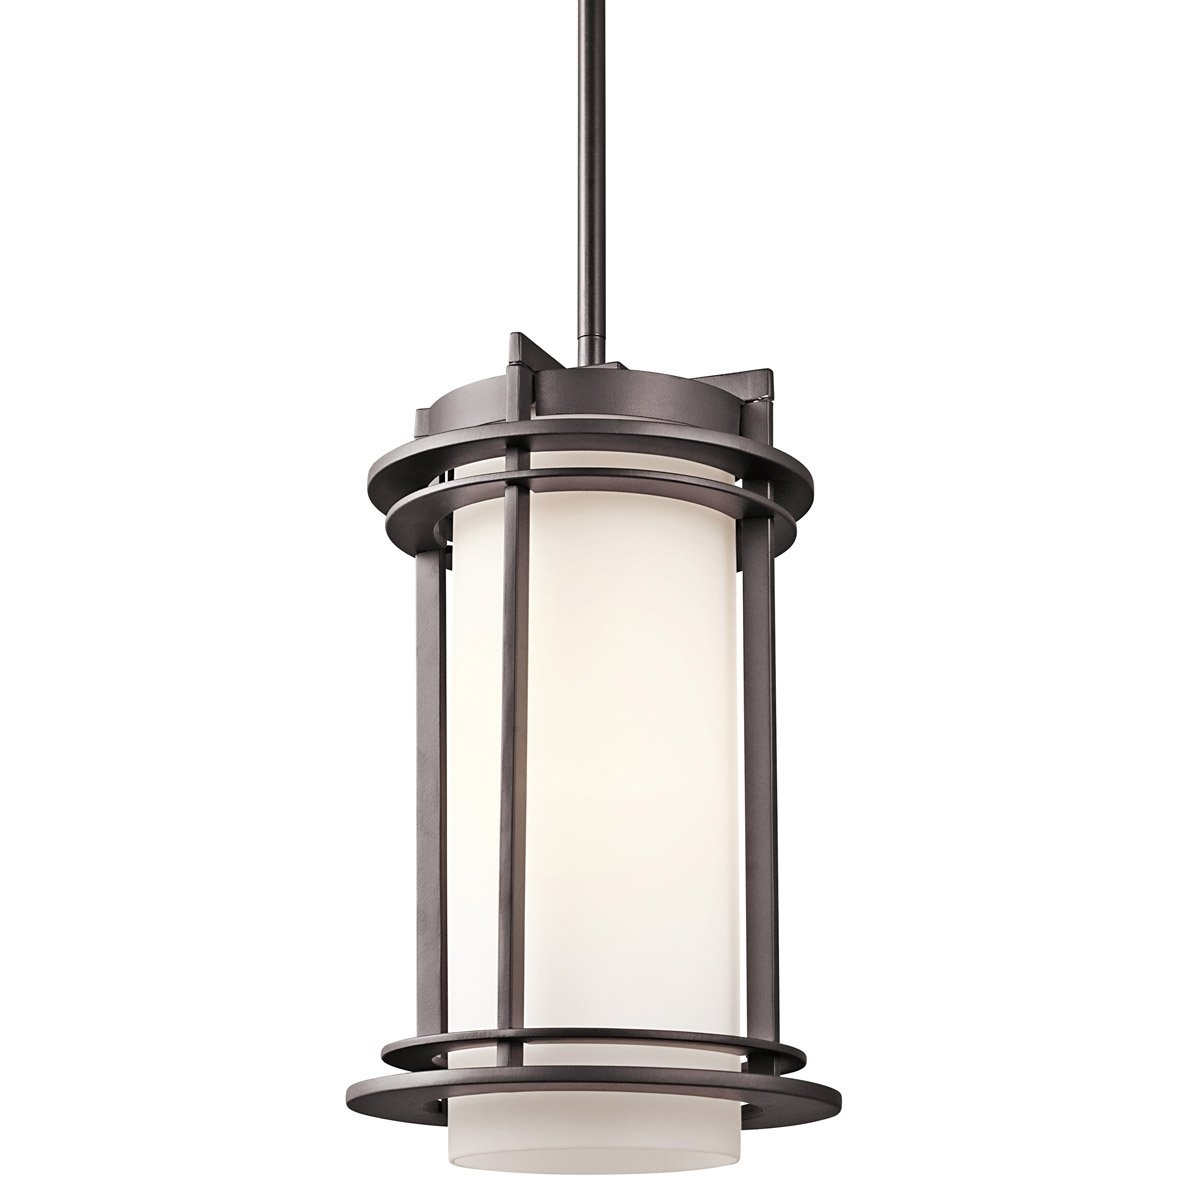 Kichler Lighting 49348Az Pacific Edge 1 Light 8 Inch Architectural Pertaining To Favorite Outdoor Pendant Kichler Lighting (View 5 of 20)